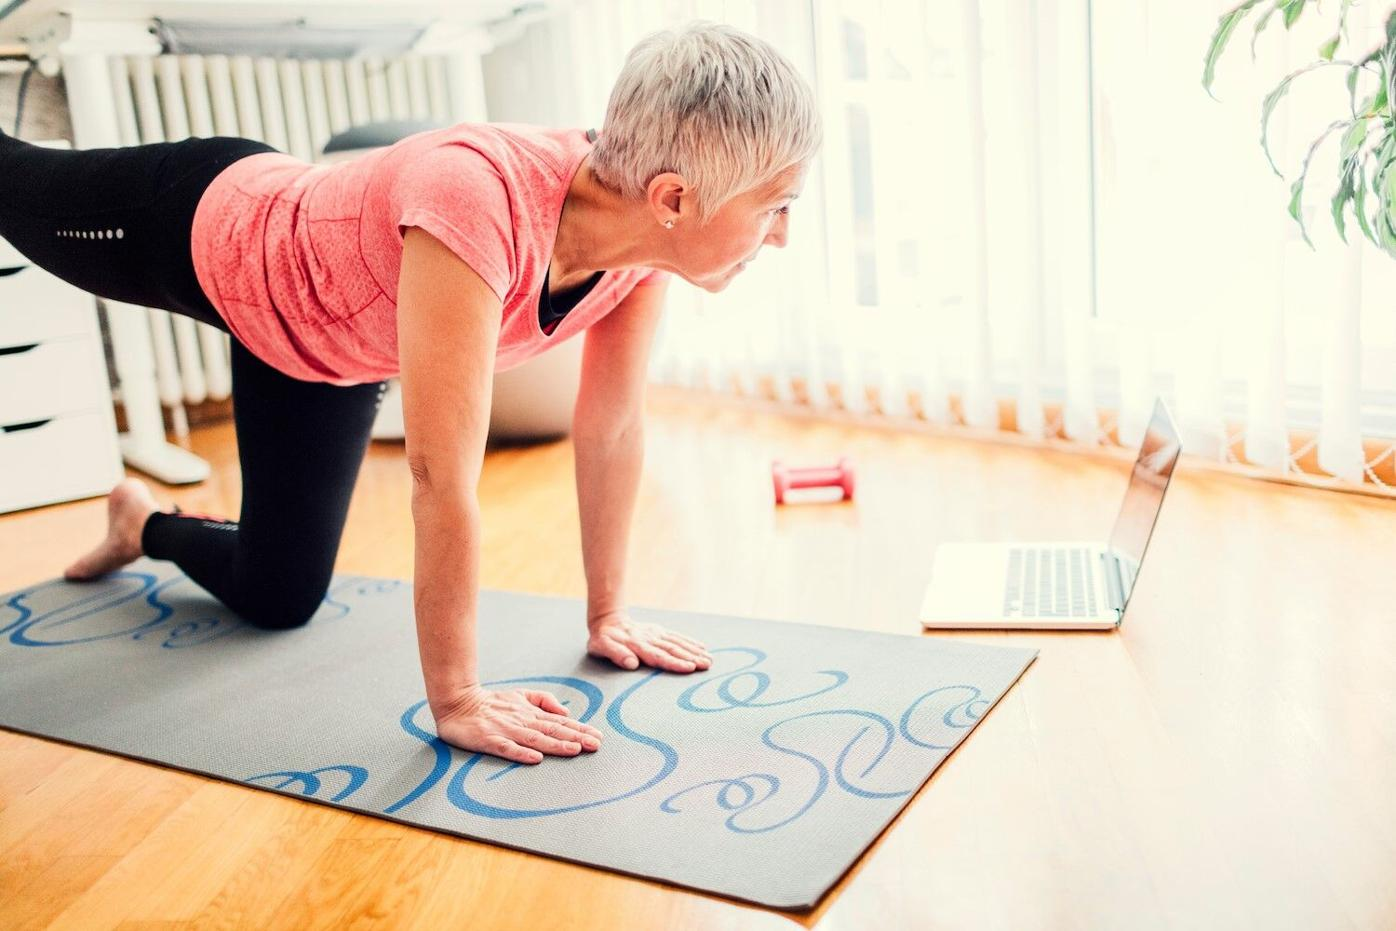 Woman doing yoga with a tablet.jpg